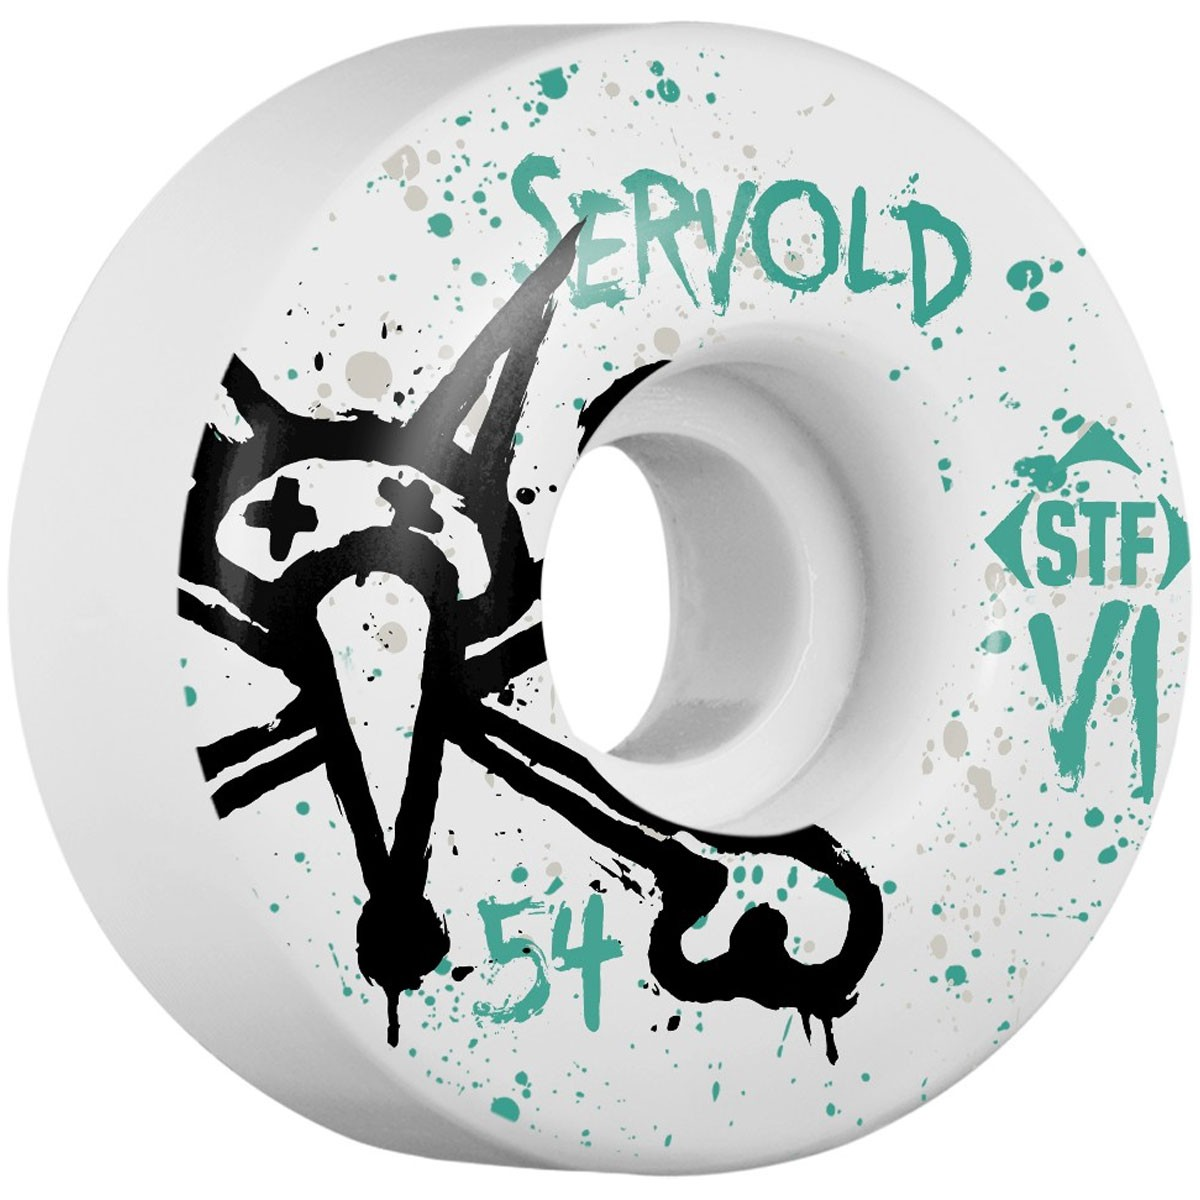 Bones Servold Vato OP V1 Skateboard Wheels - 54mm